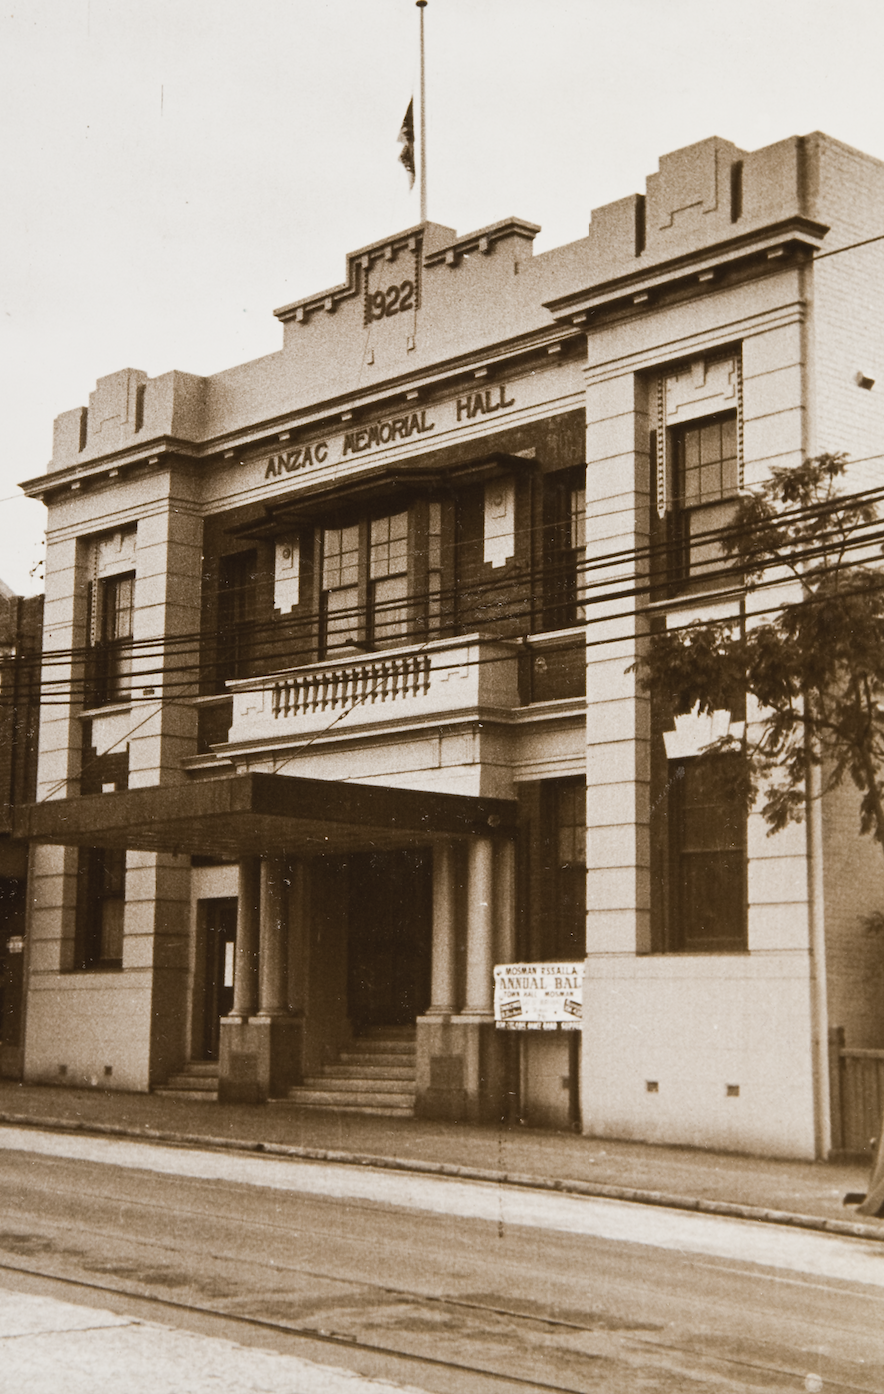 The Kings Theatre resided in Mosman's Anzac Hall (now Country Road)